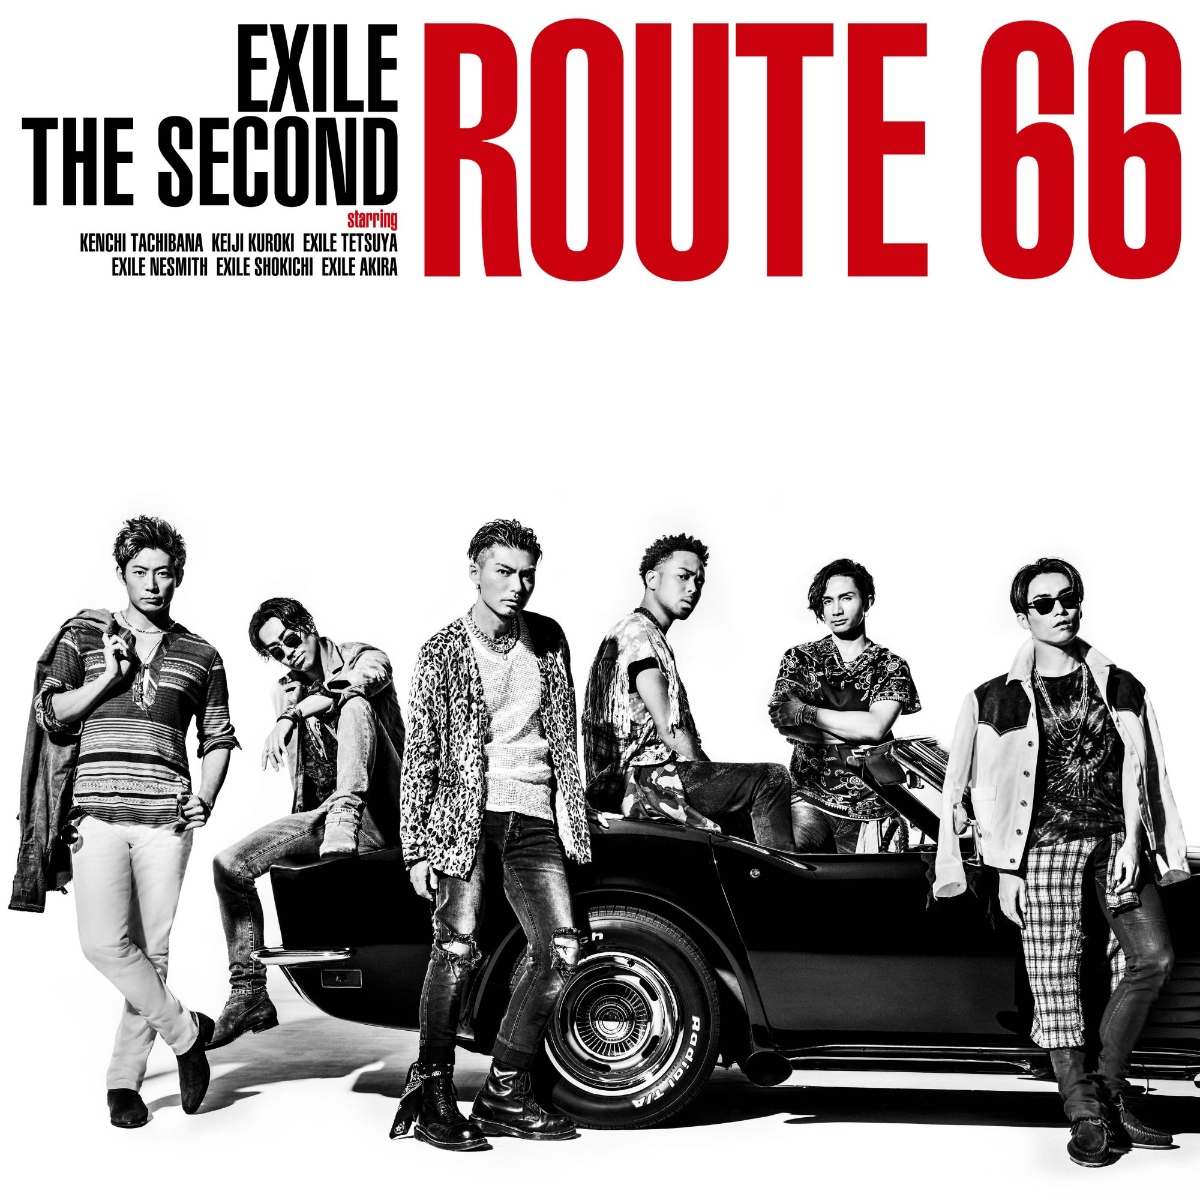 Route66[EXILETHESECOND]